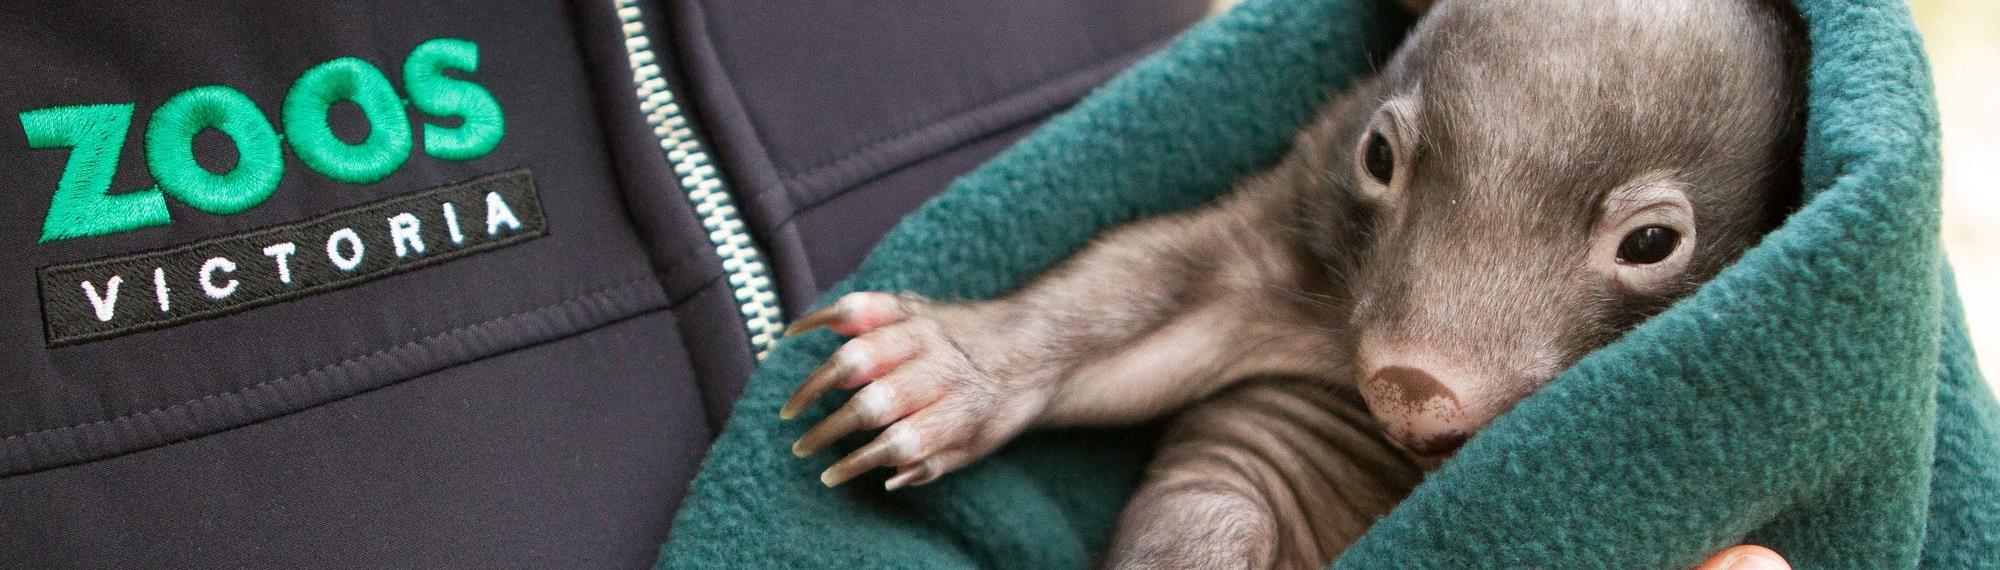 Wombat Joey Shadow wrapped snugly in a green blanket being cuddled by a keeper at Healesville Sanctuary.